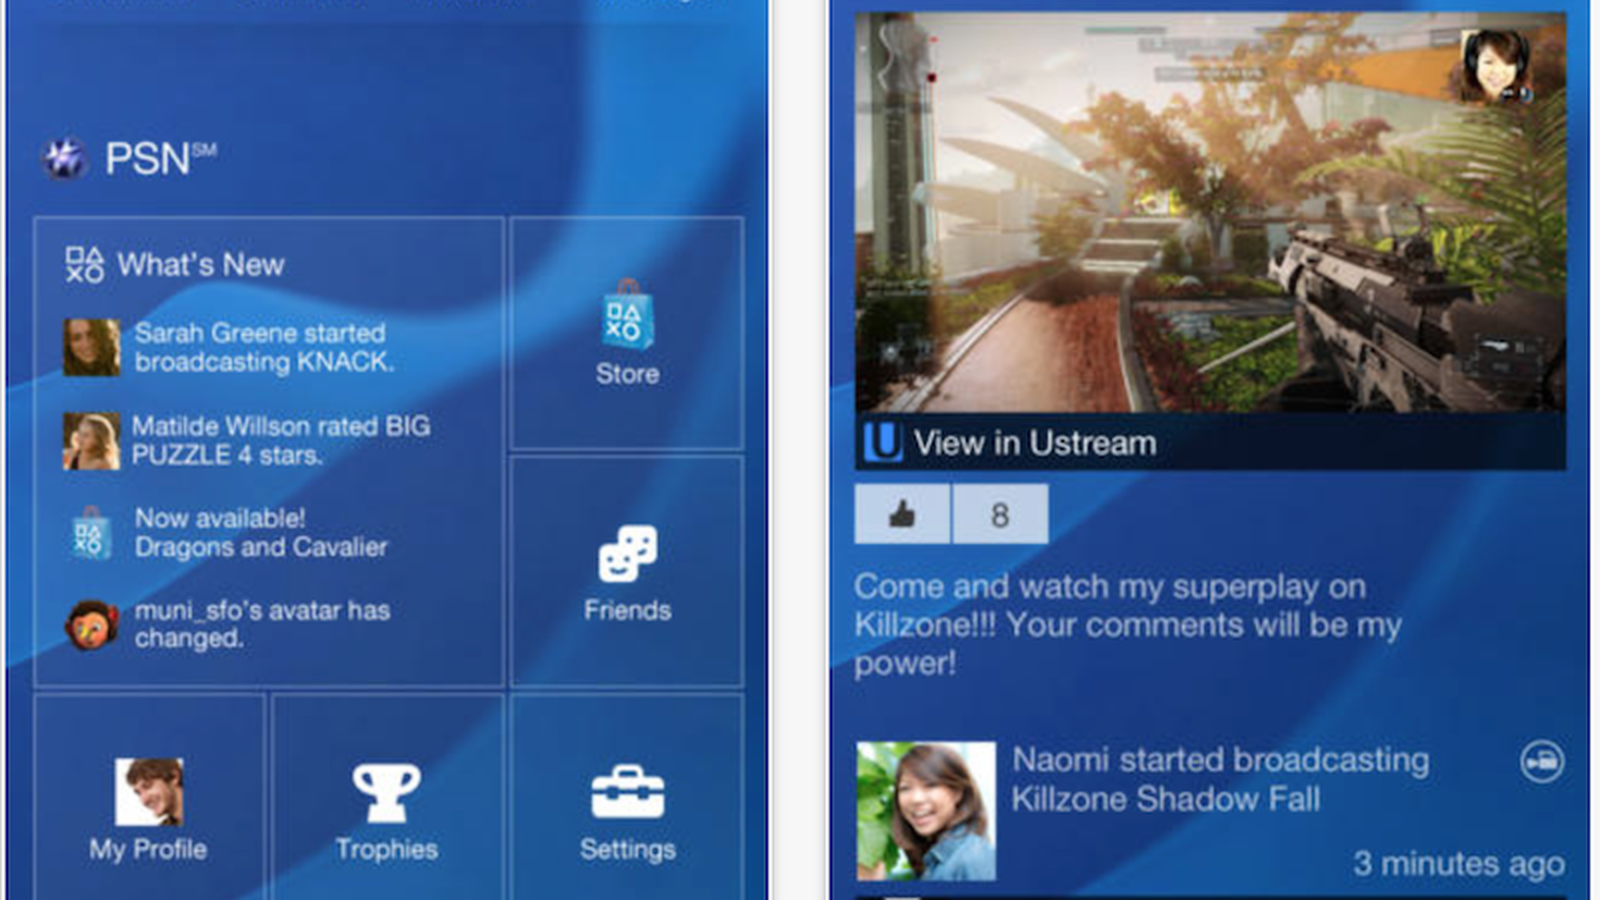 Sony Releases Playstation App Companion App For Playstation 4 Macrumors